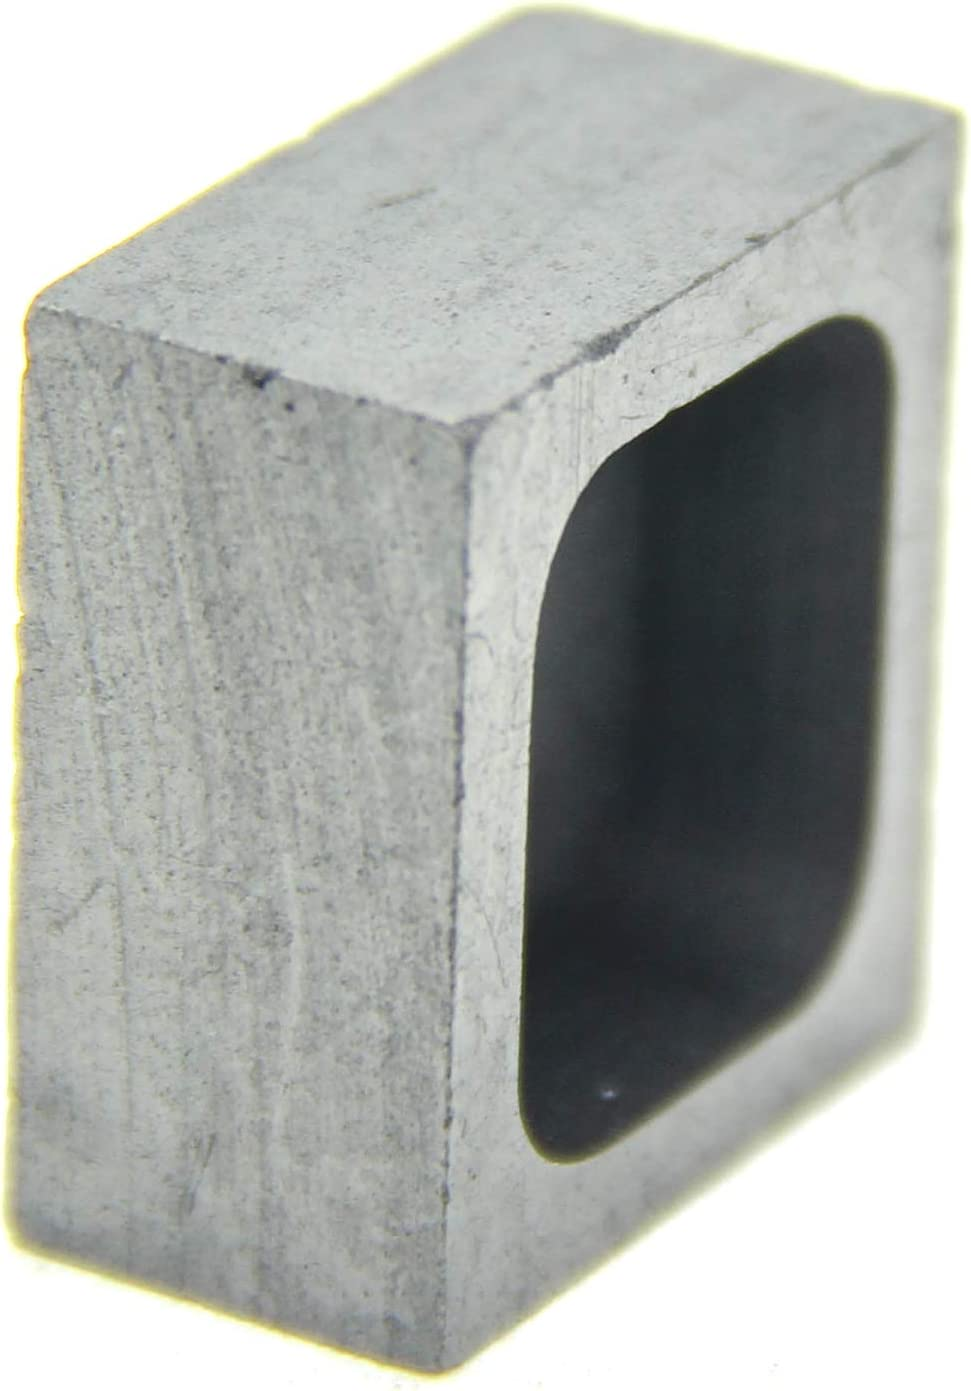 Silver Ingot for Gold Silver Aluminum Copper Brass Zinc Plumbum and Alloy Metals, Melting Casting Mould 100x60x40mm-2000g Gold; 1060g Silver Graphite Ingot Mold